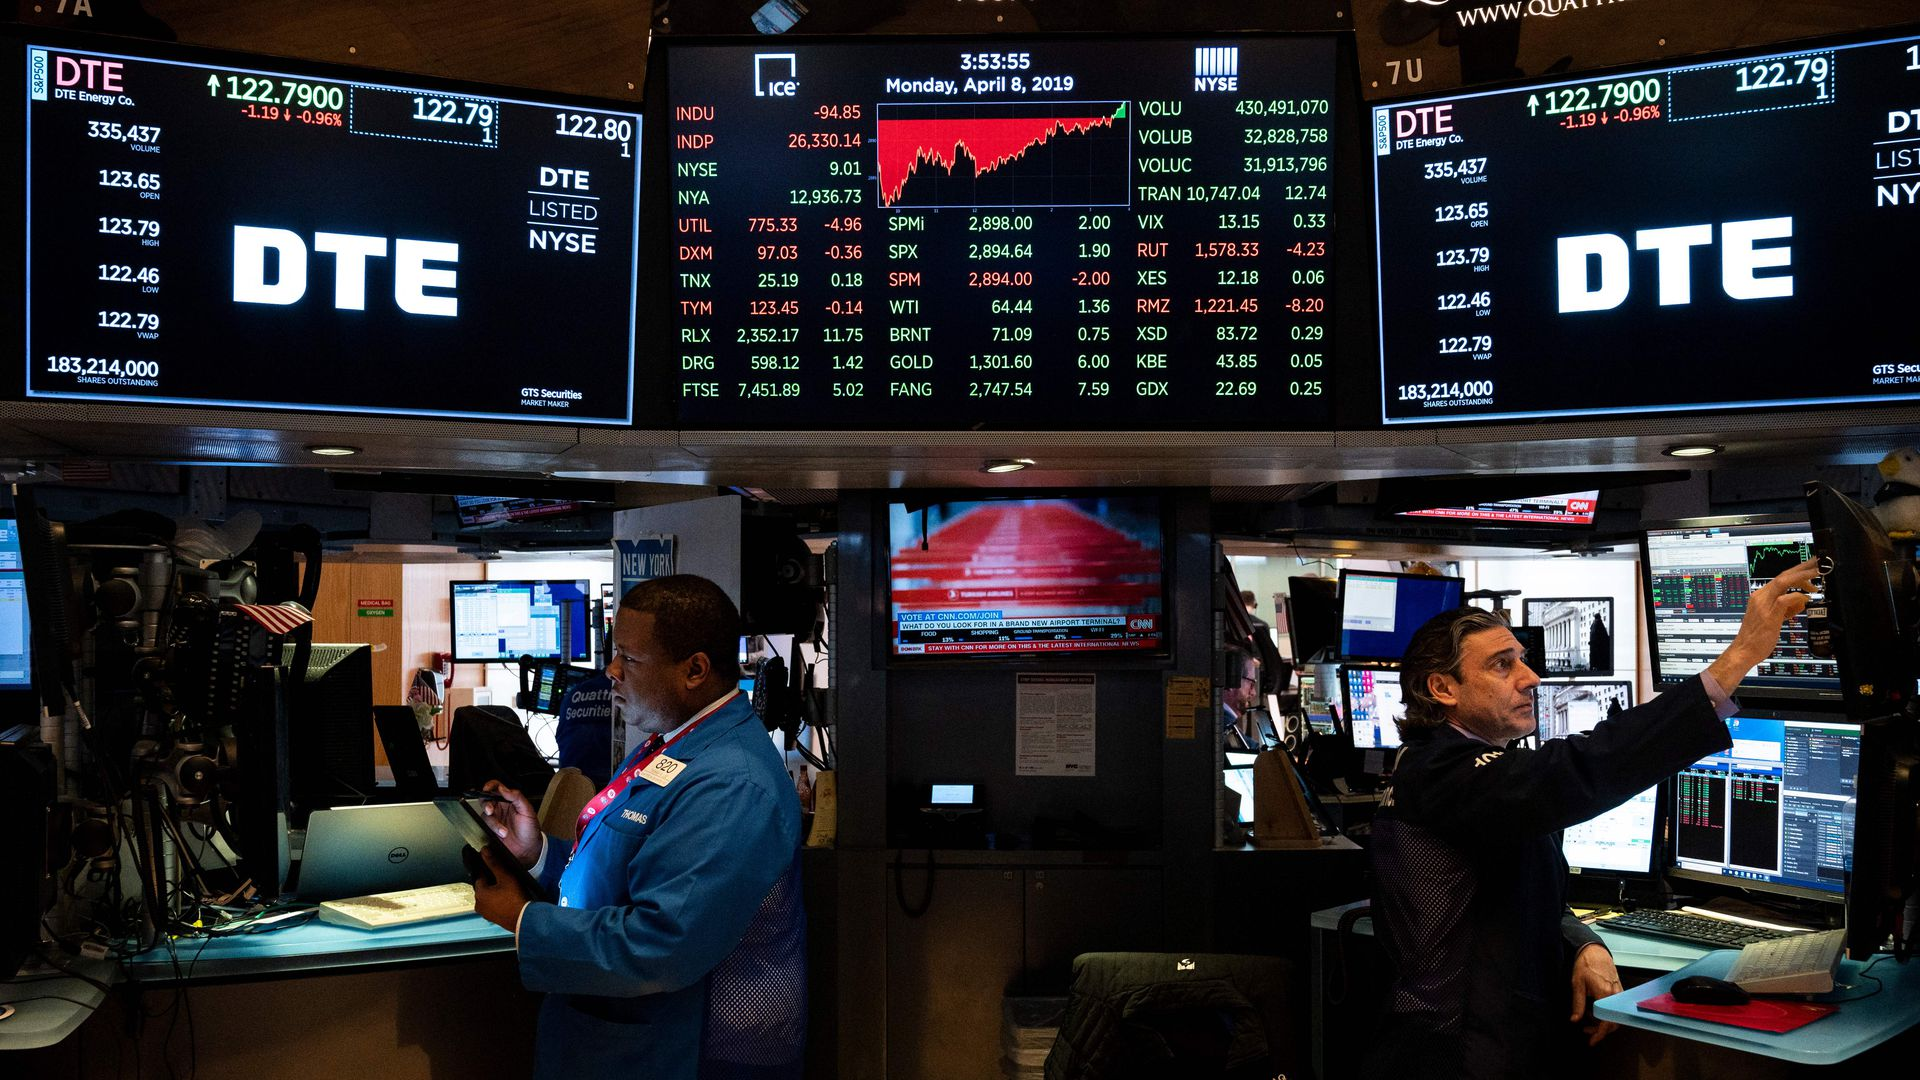 In this image, two men stand facing away from each other on the stock market trading floor, with three screens above and behind them.